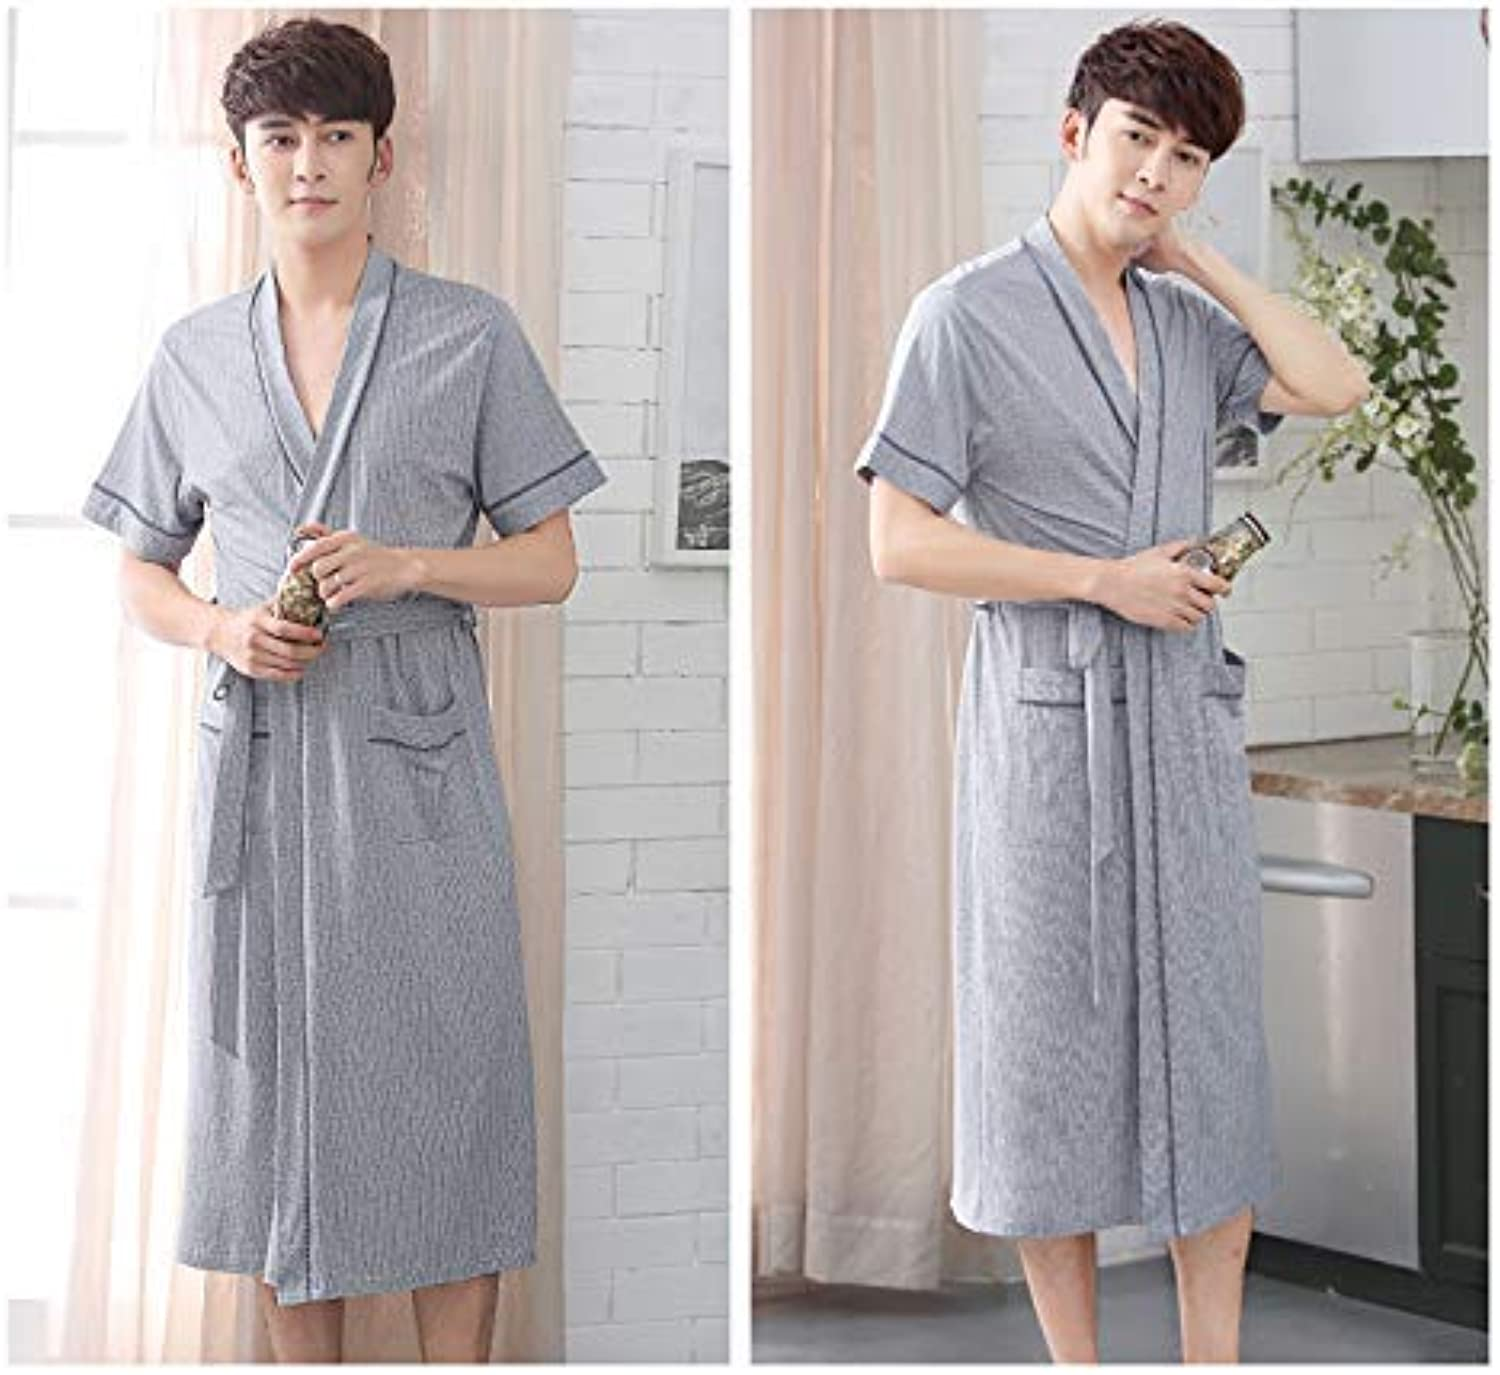 DALAI Couple Nightgown Men's Summer Thin Section Short-Sleeved Cotton Bathrobe Summer yurt Women's Long Sexy Pajamas (color   Grey, Size   XXXL) (color   Grey, Size   XXXL)